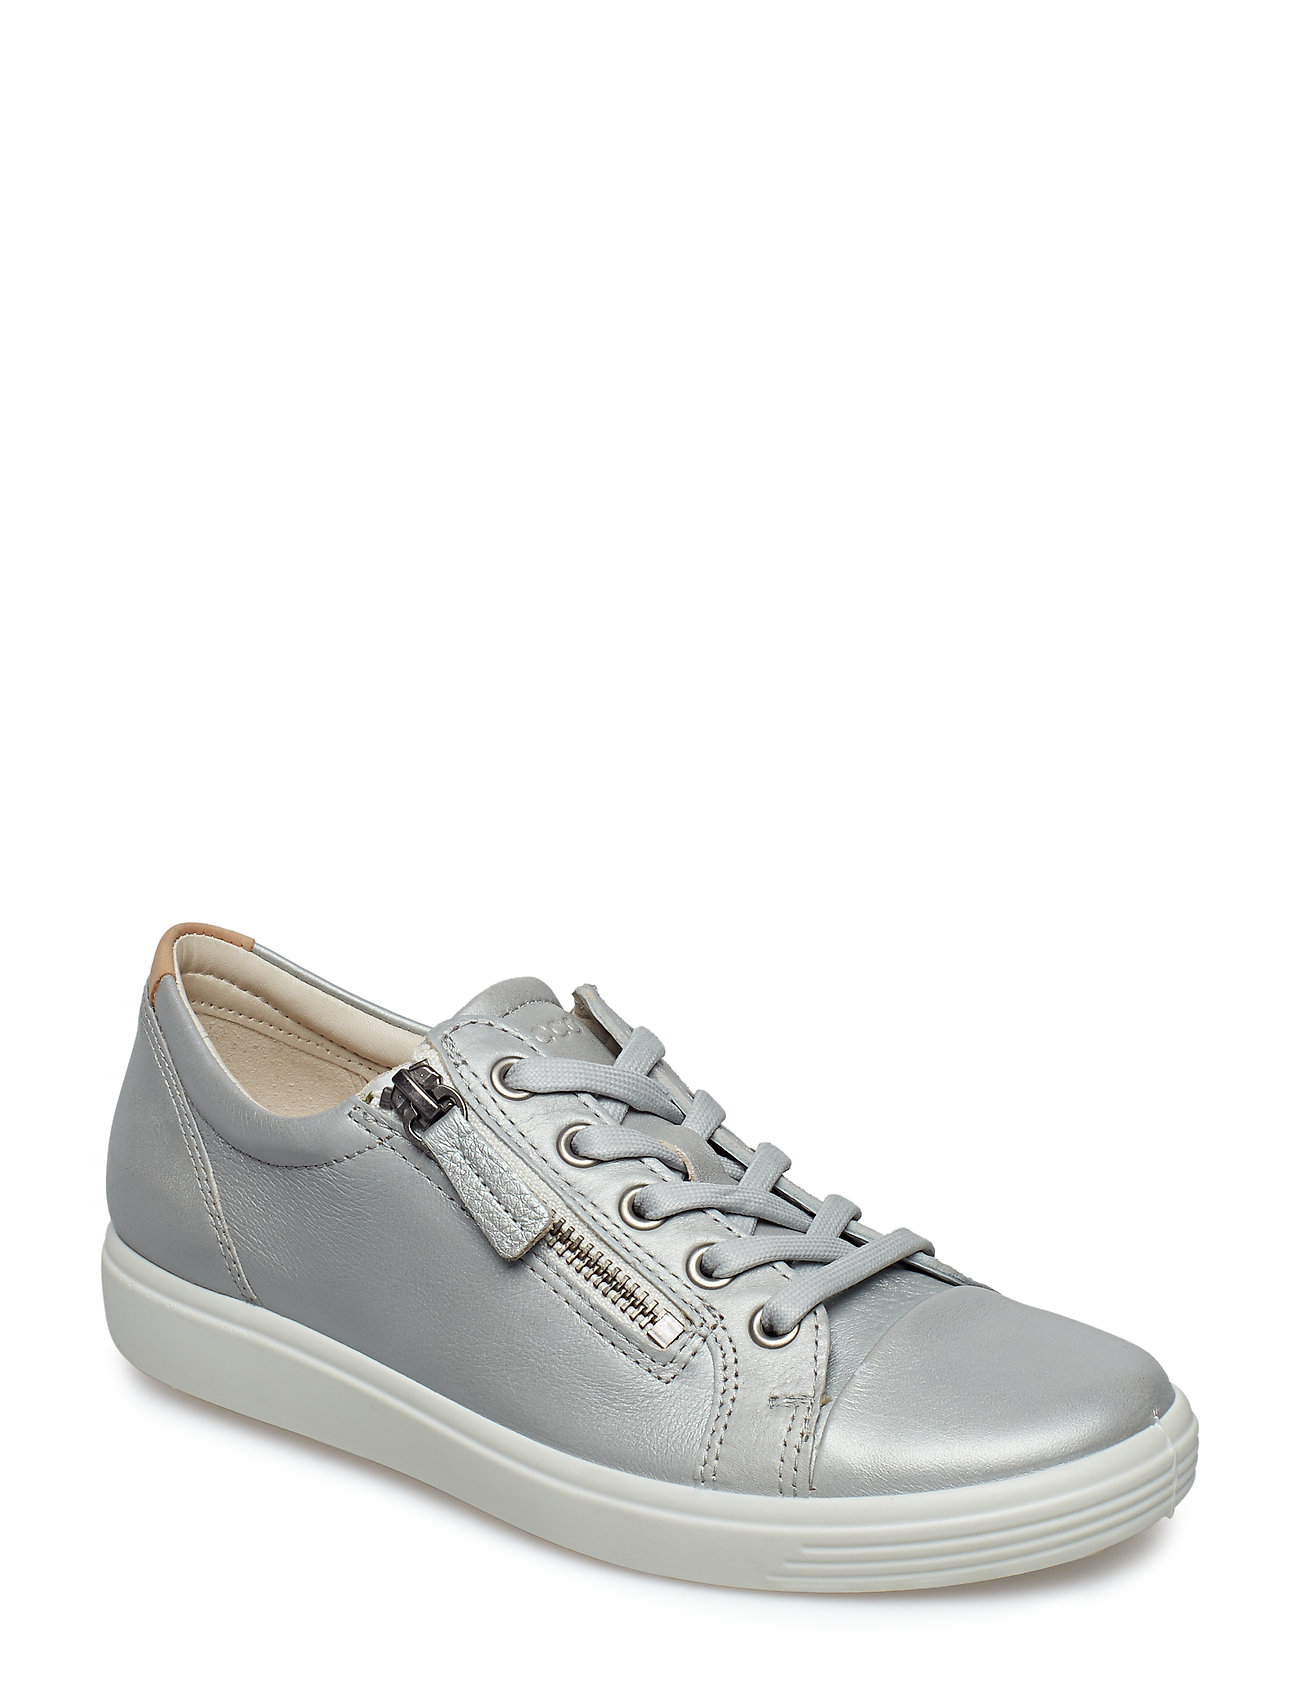 Image of Soft 7 W Low-top Sneakers Grå ECCO (3090494767)